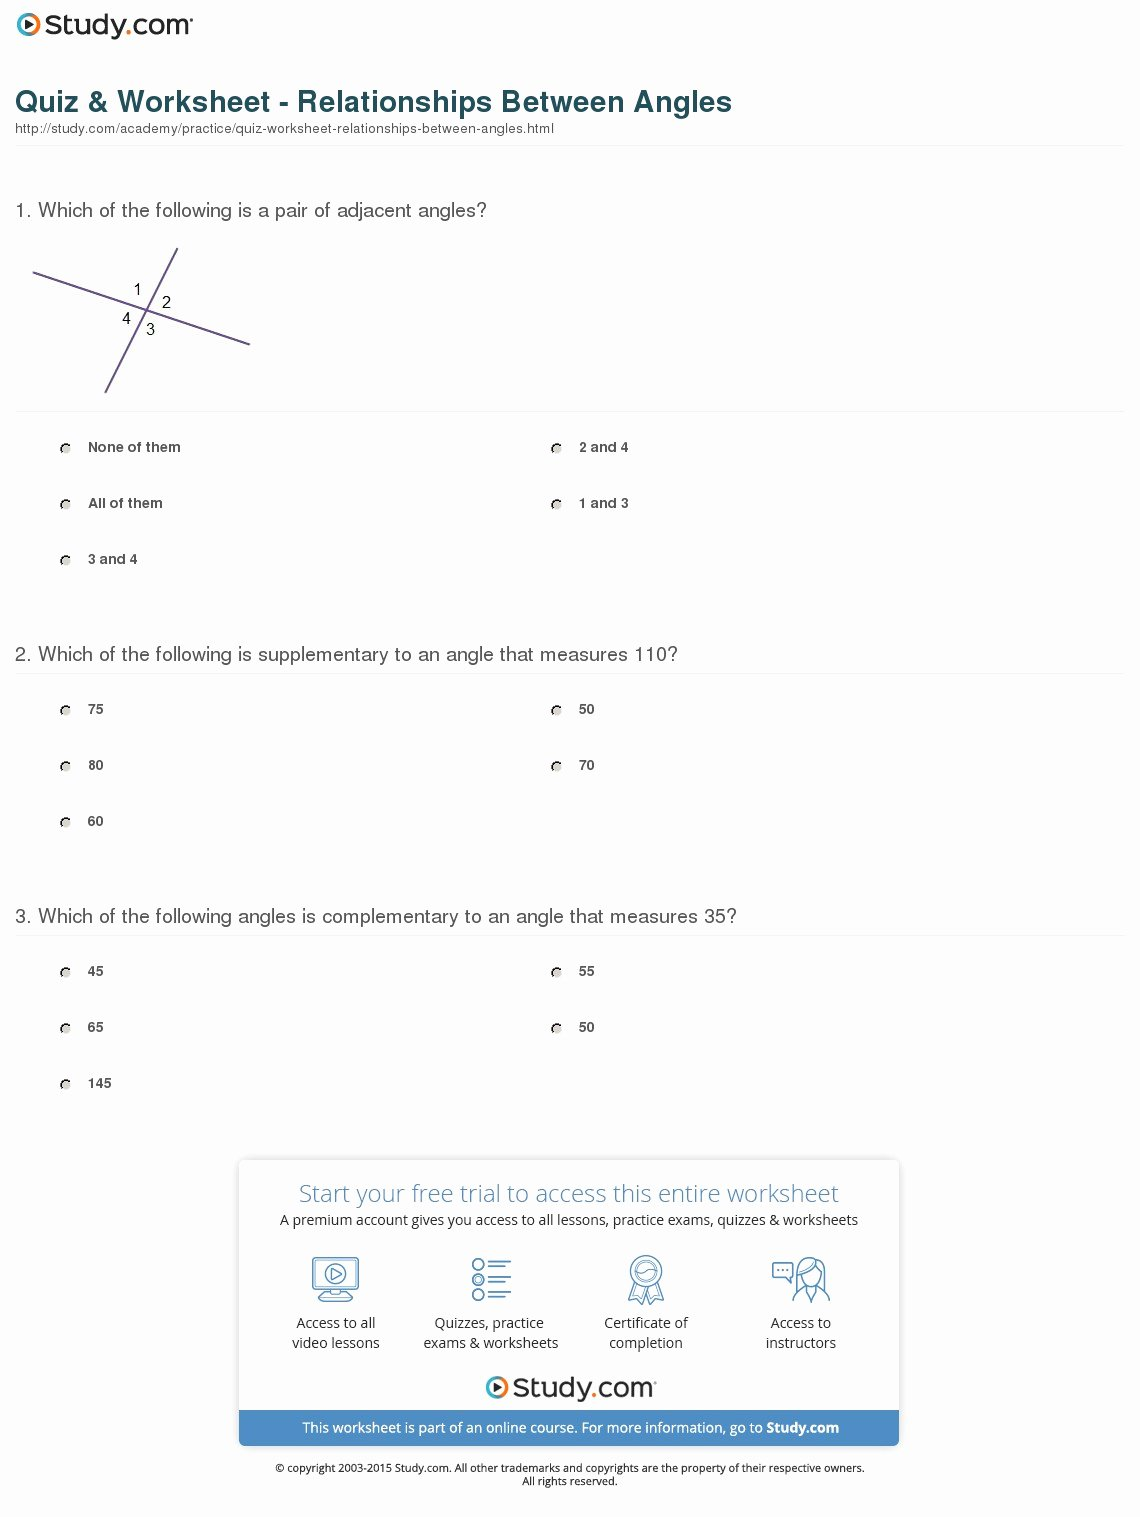 Angle Pair Relationships Worksheet Fresh Quiz & Worksheet Relationships Between Angles